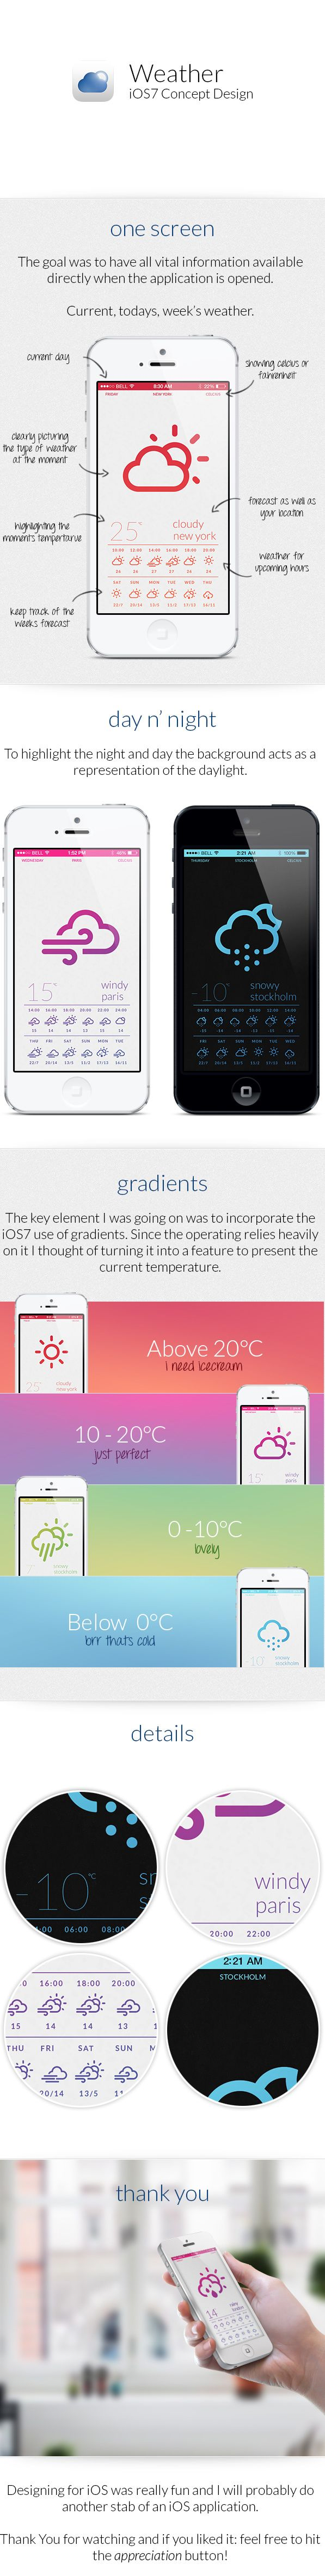 Weather iOS7 Concept Design by Markus Waltré, via Behance